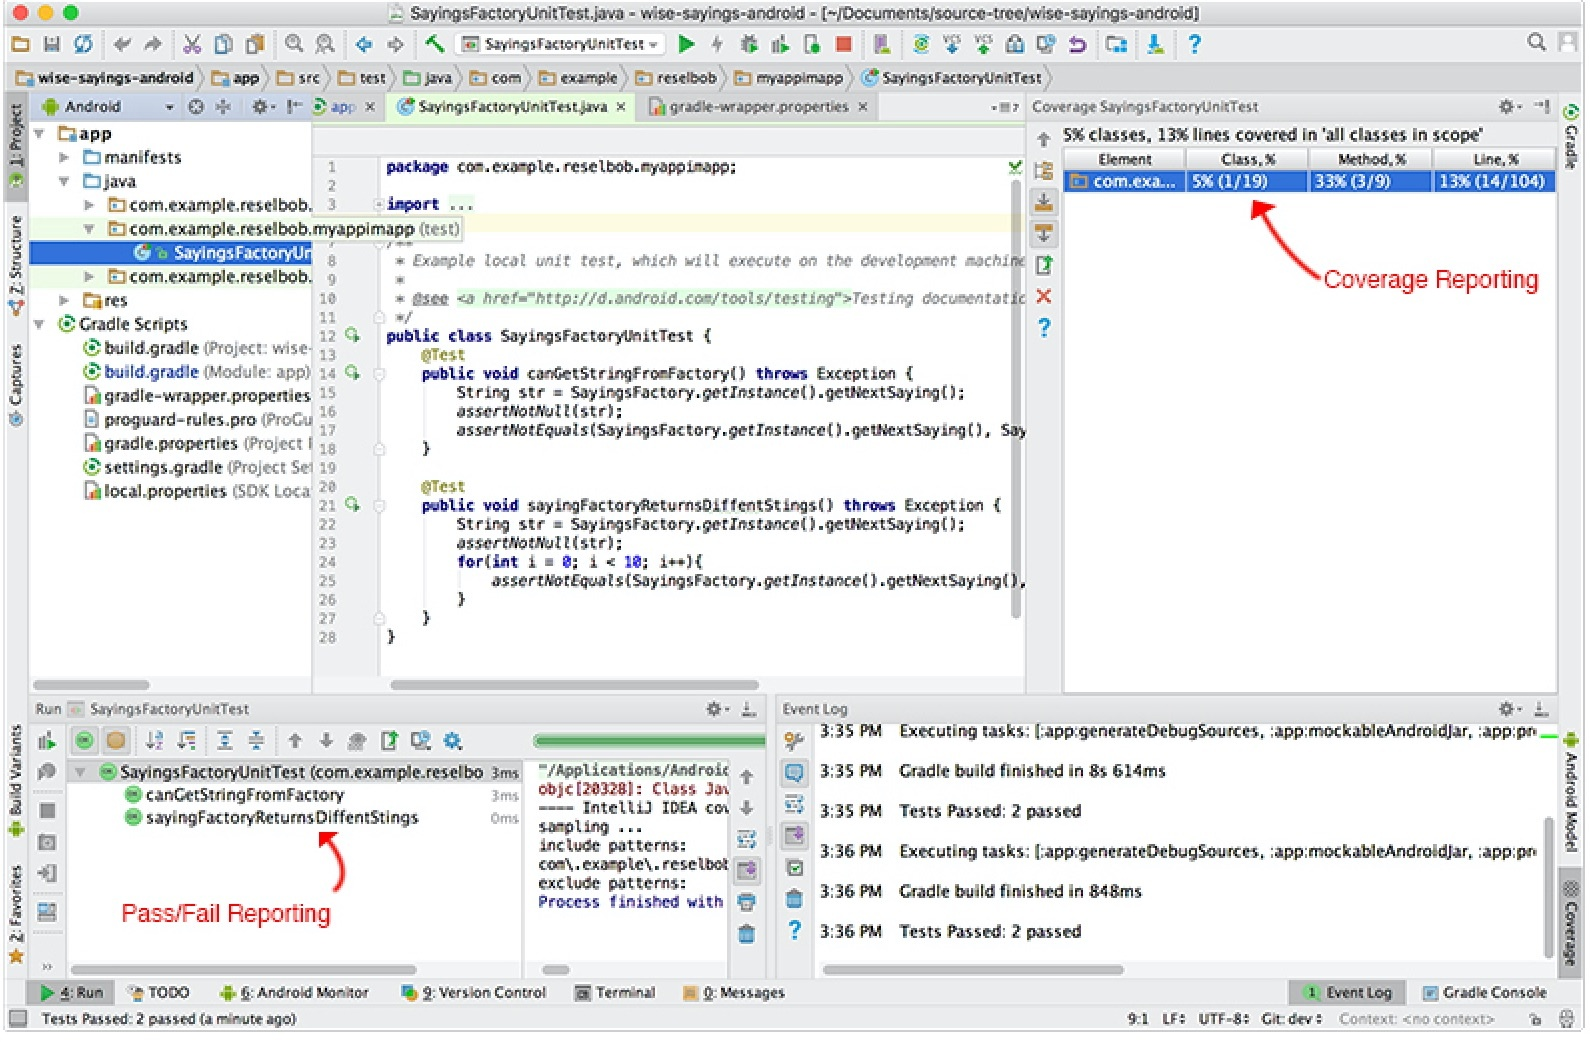 Android Studio provides code coverage reporting as part of its unit testing framework